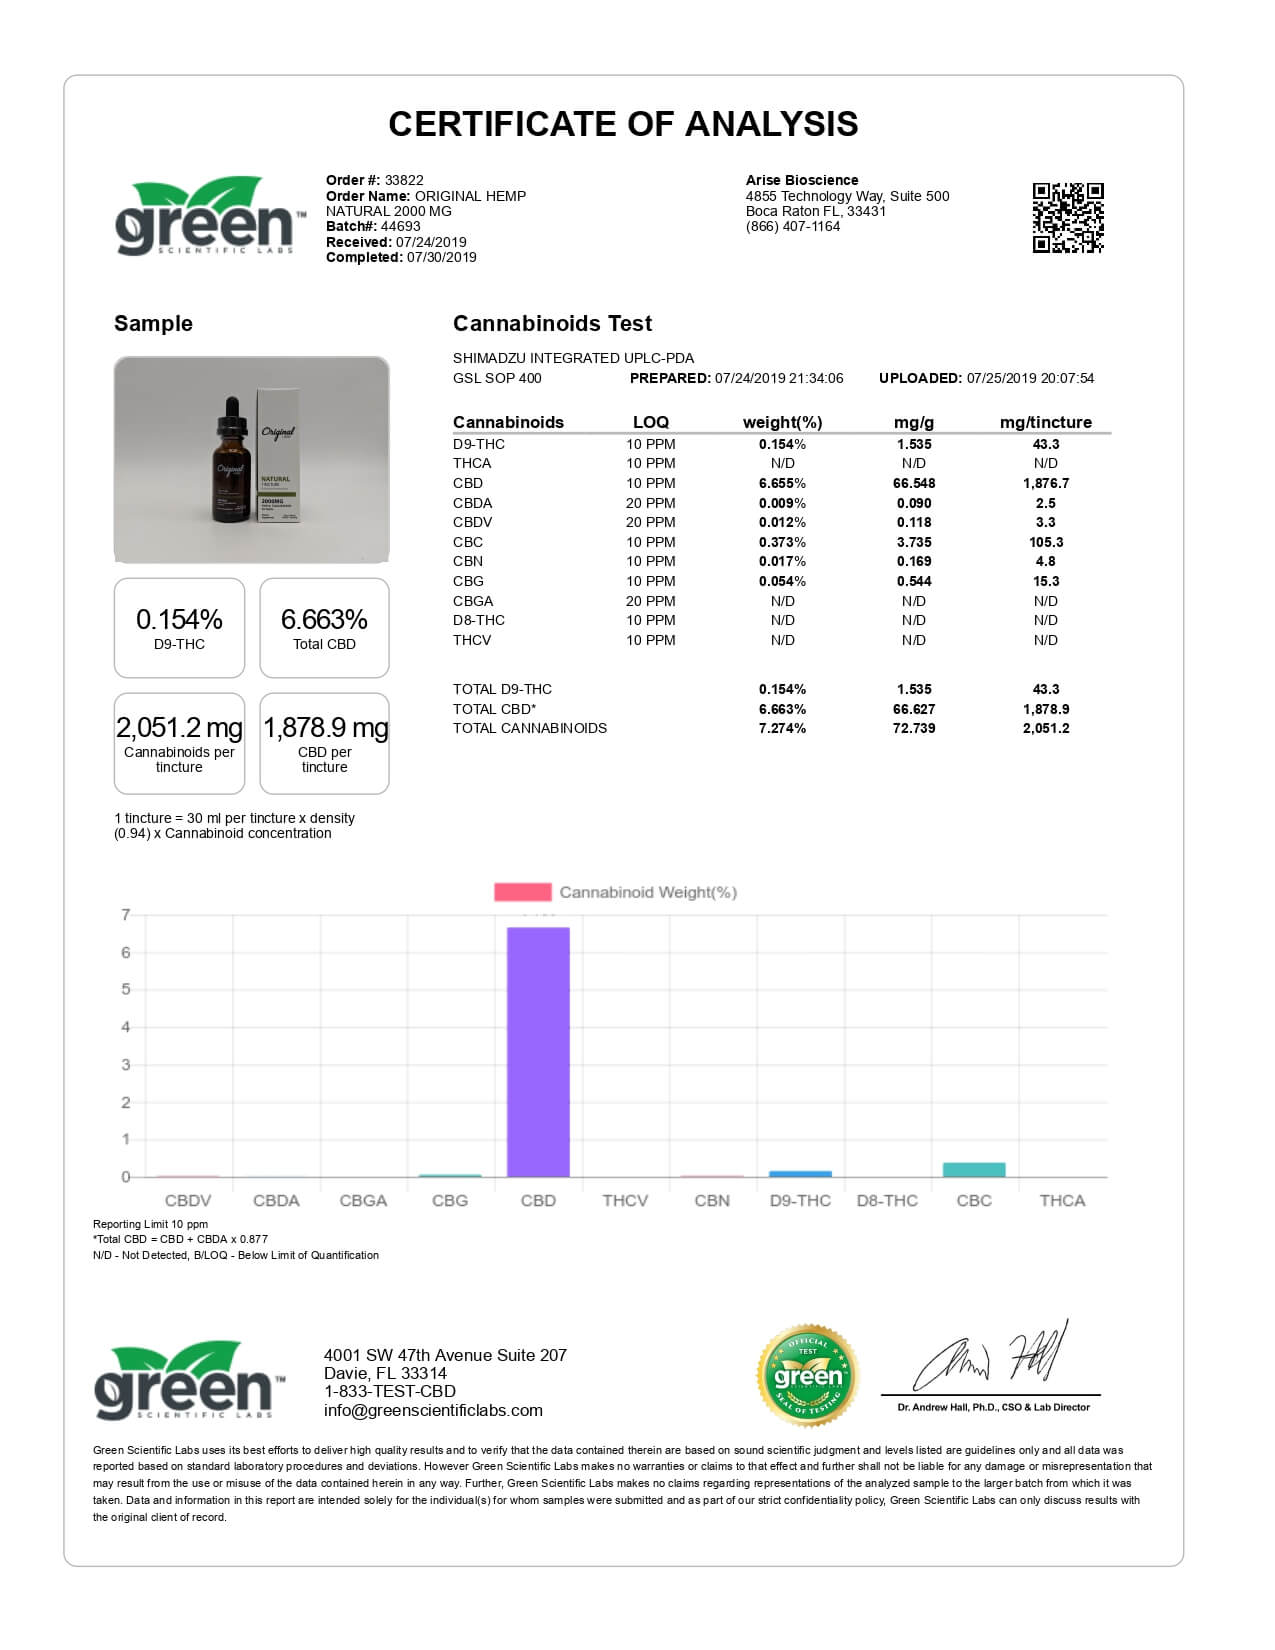 Original Hemp CBD Tincture Natural 2000mg Lab Report